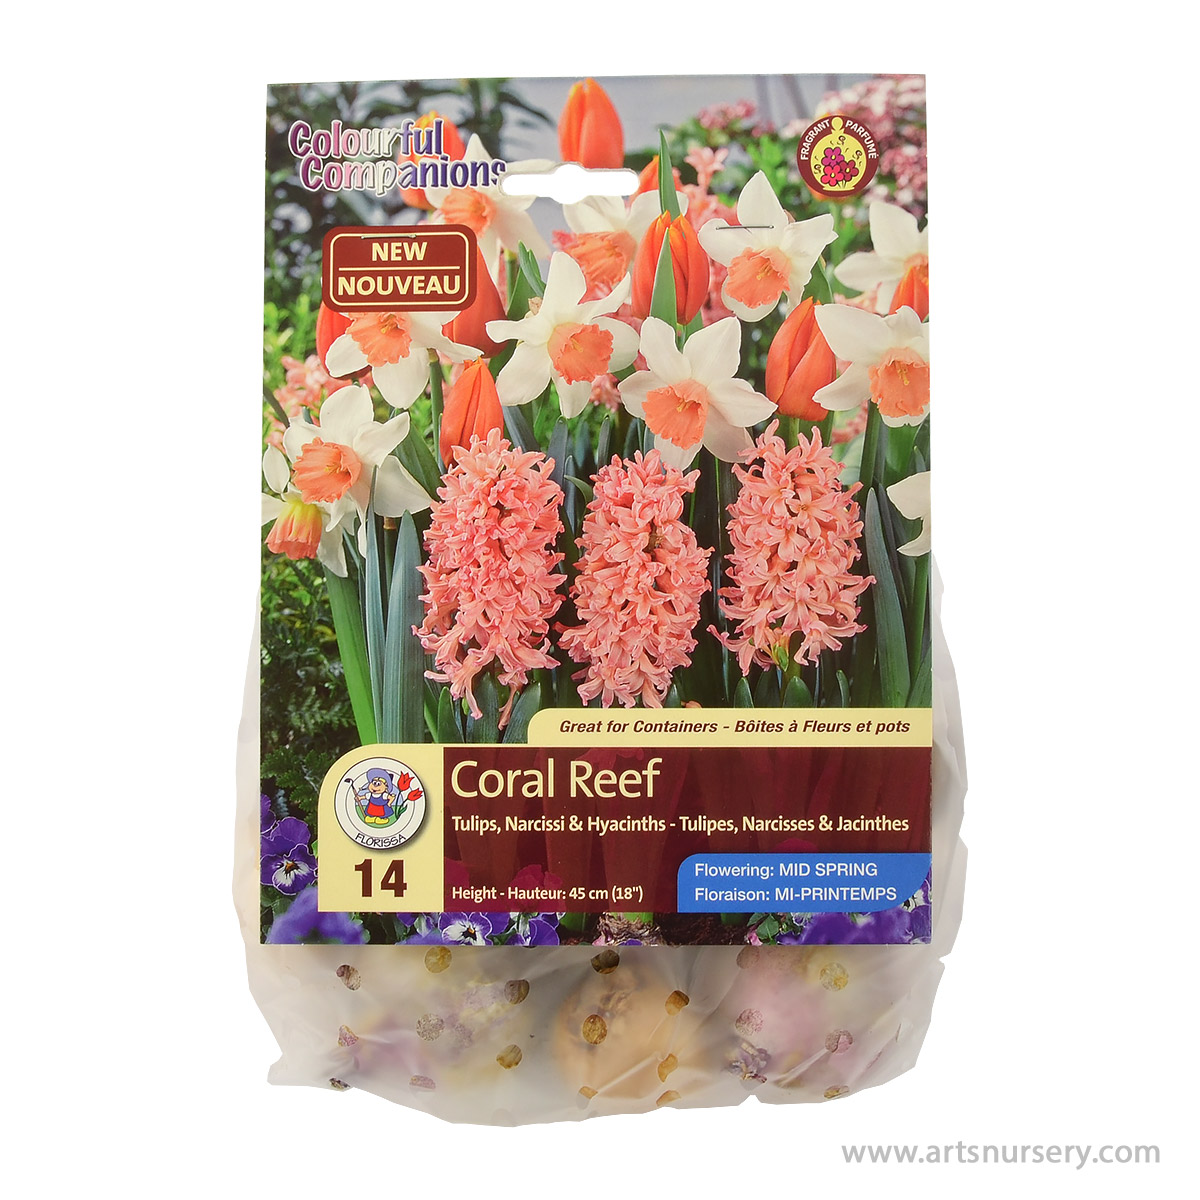 Colourful Companions Tulipa 'Coral Reef' Bulbs